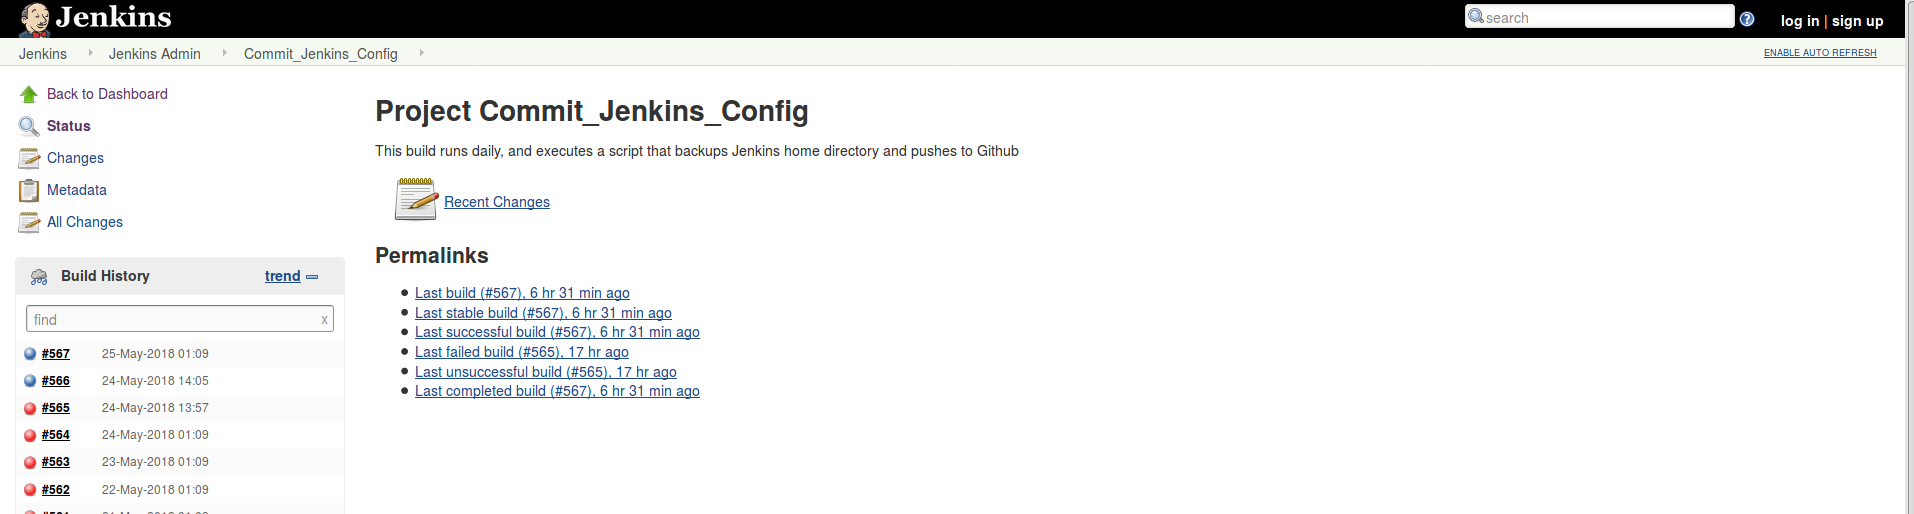 Jenkins Config Build